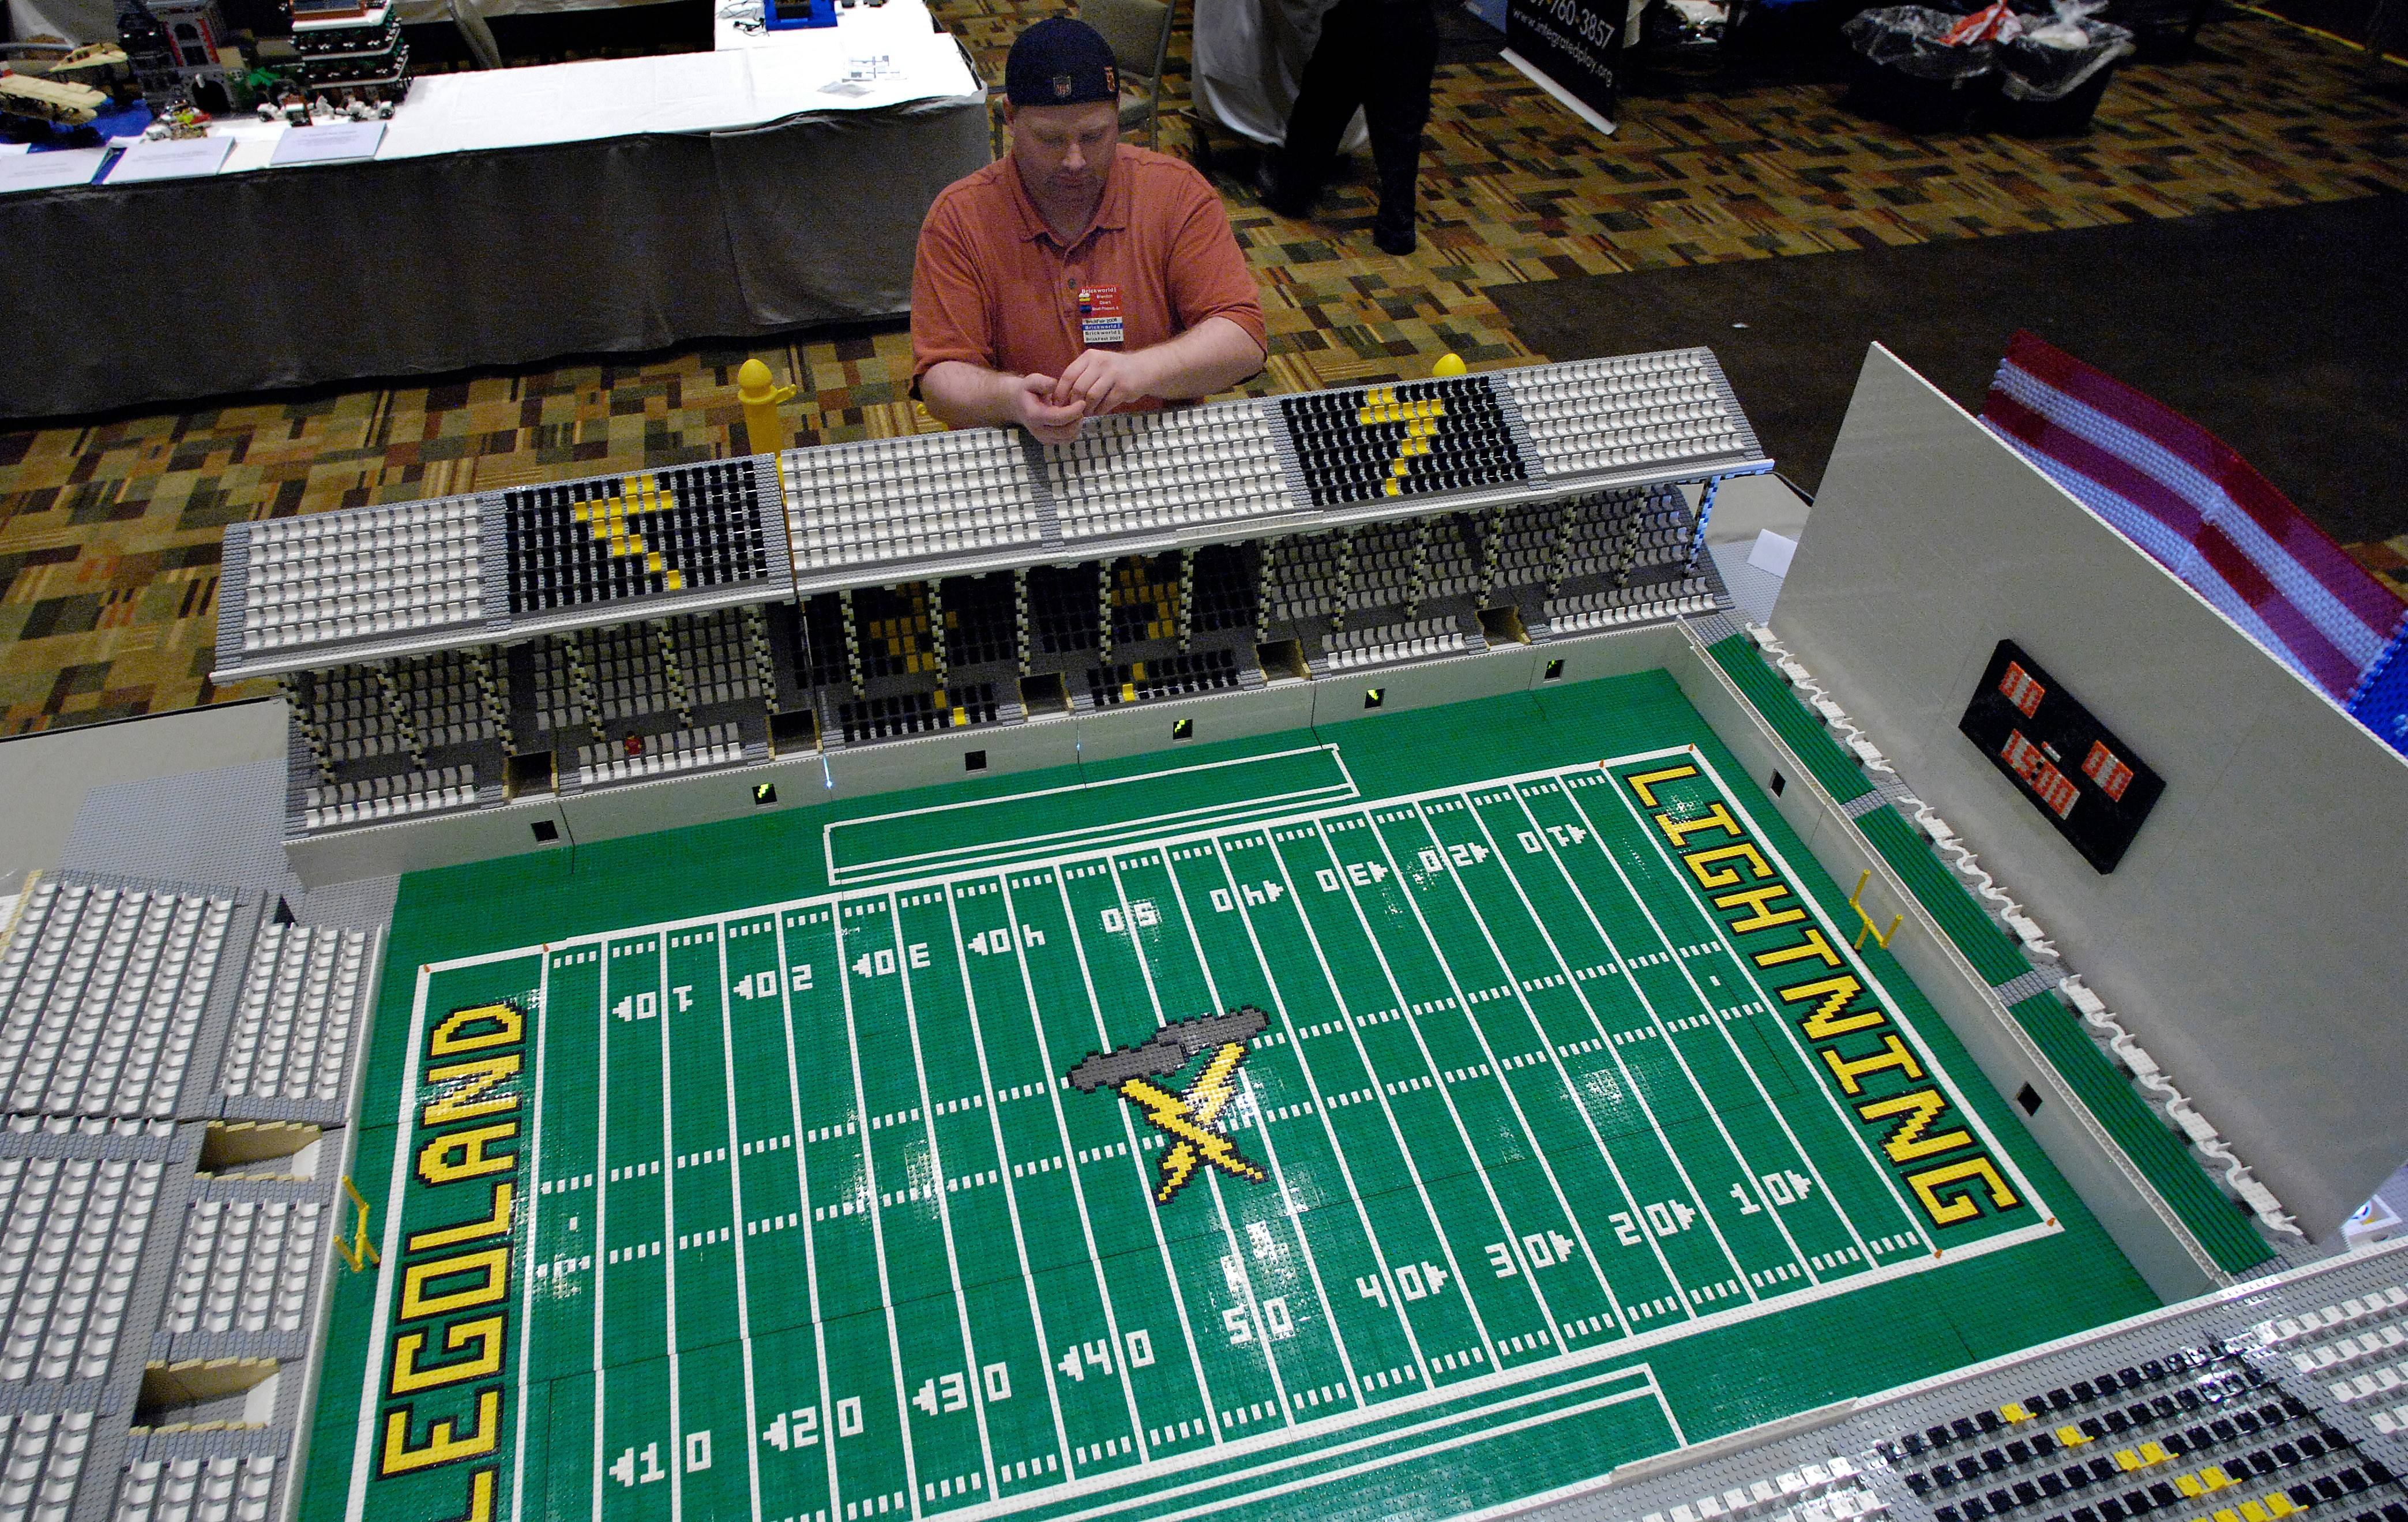 This football stadium built over two years at a cost of about $10,000 was among the Lego creations on display at the 2009 Brickworld, which was held in Wheeling.